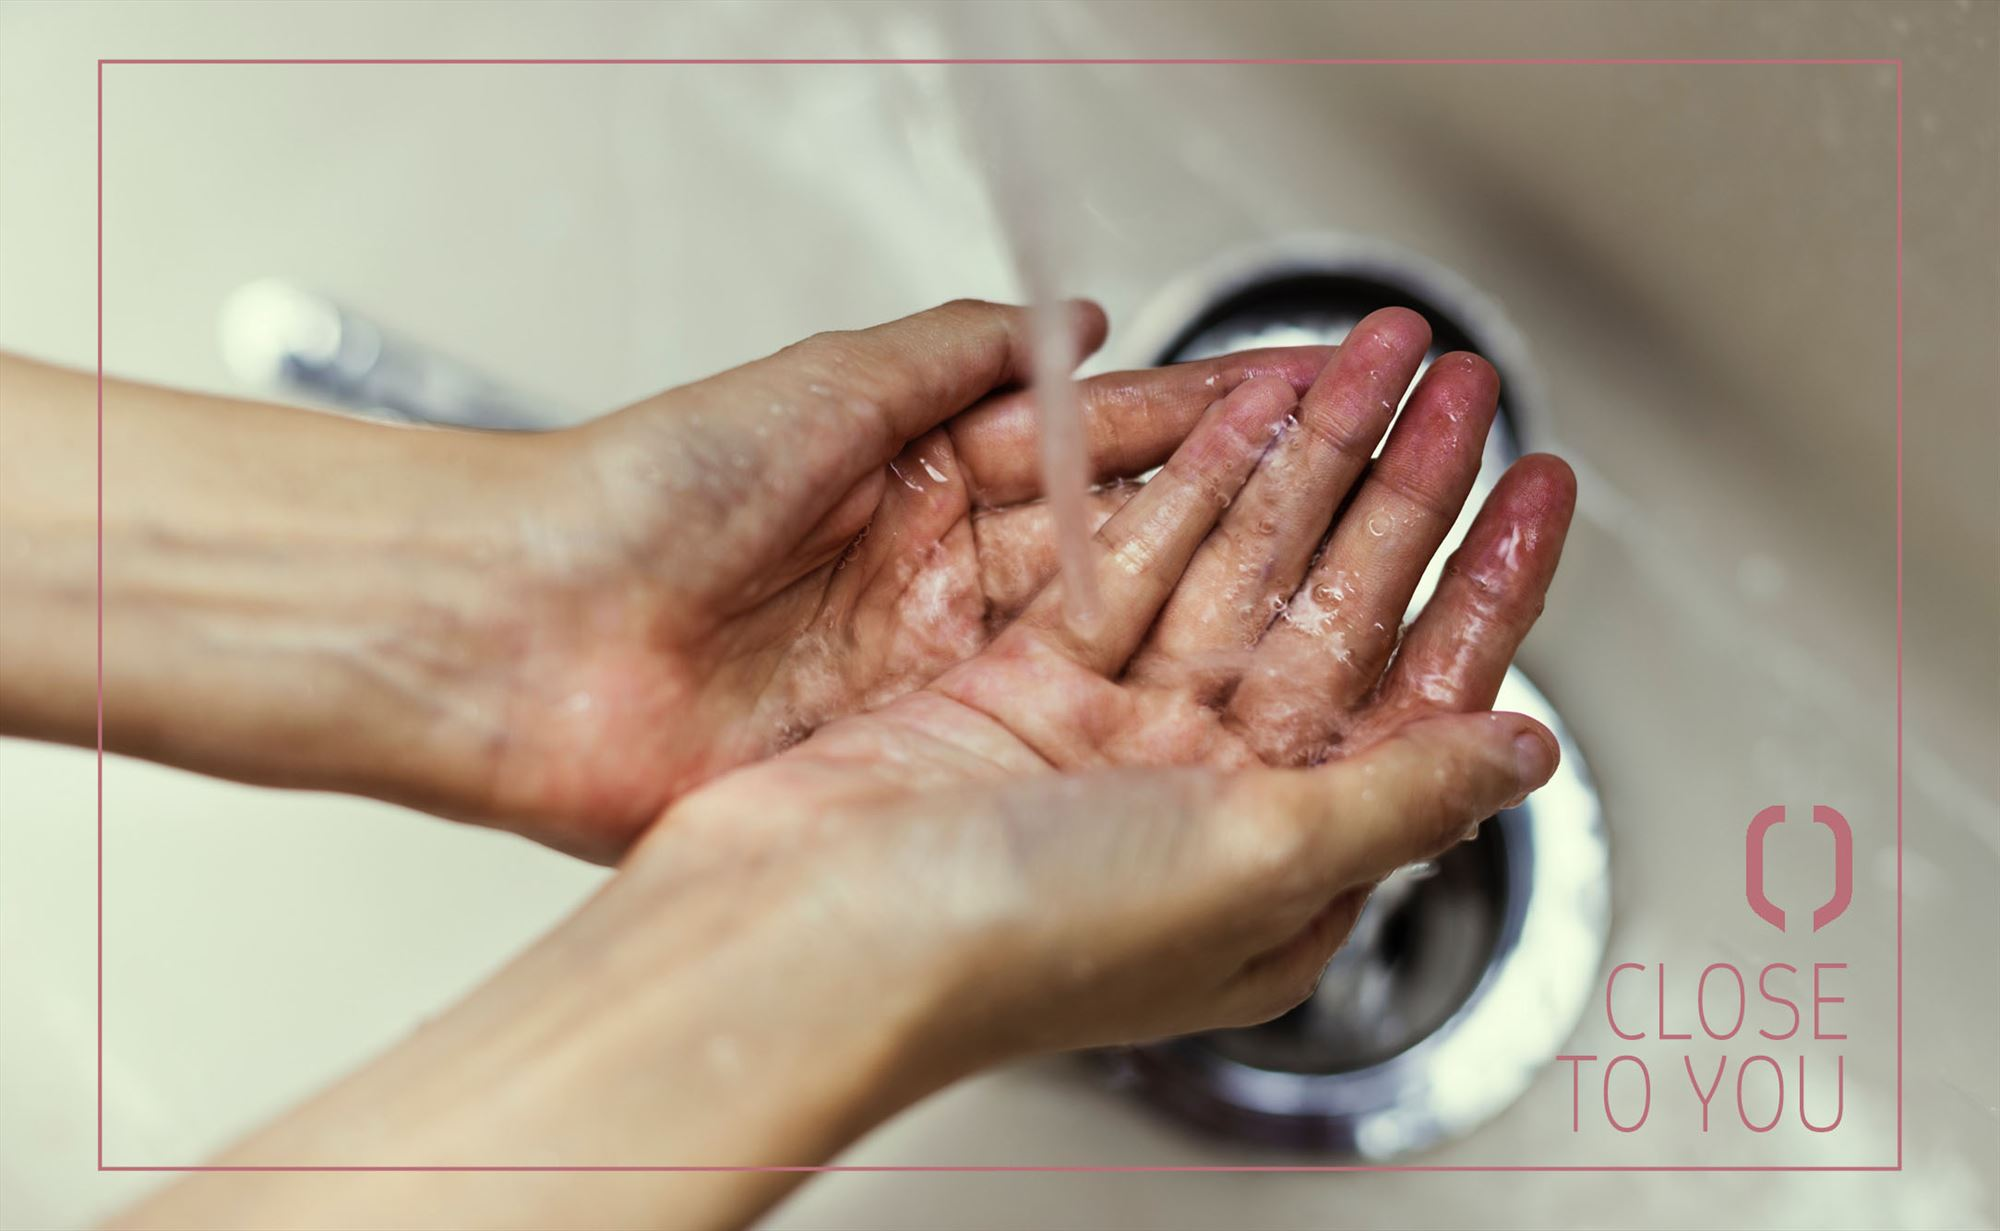 The hand wash called to be the most effective way to prevent flu